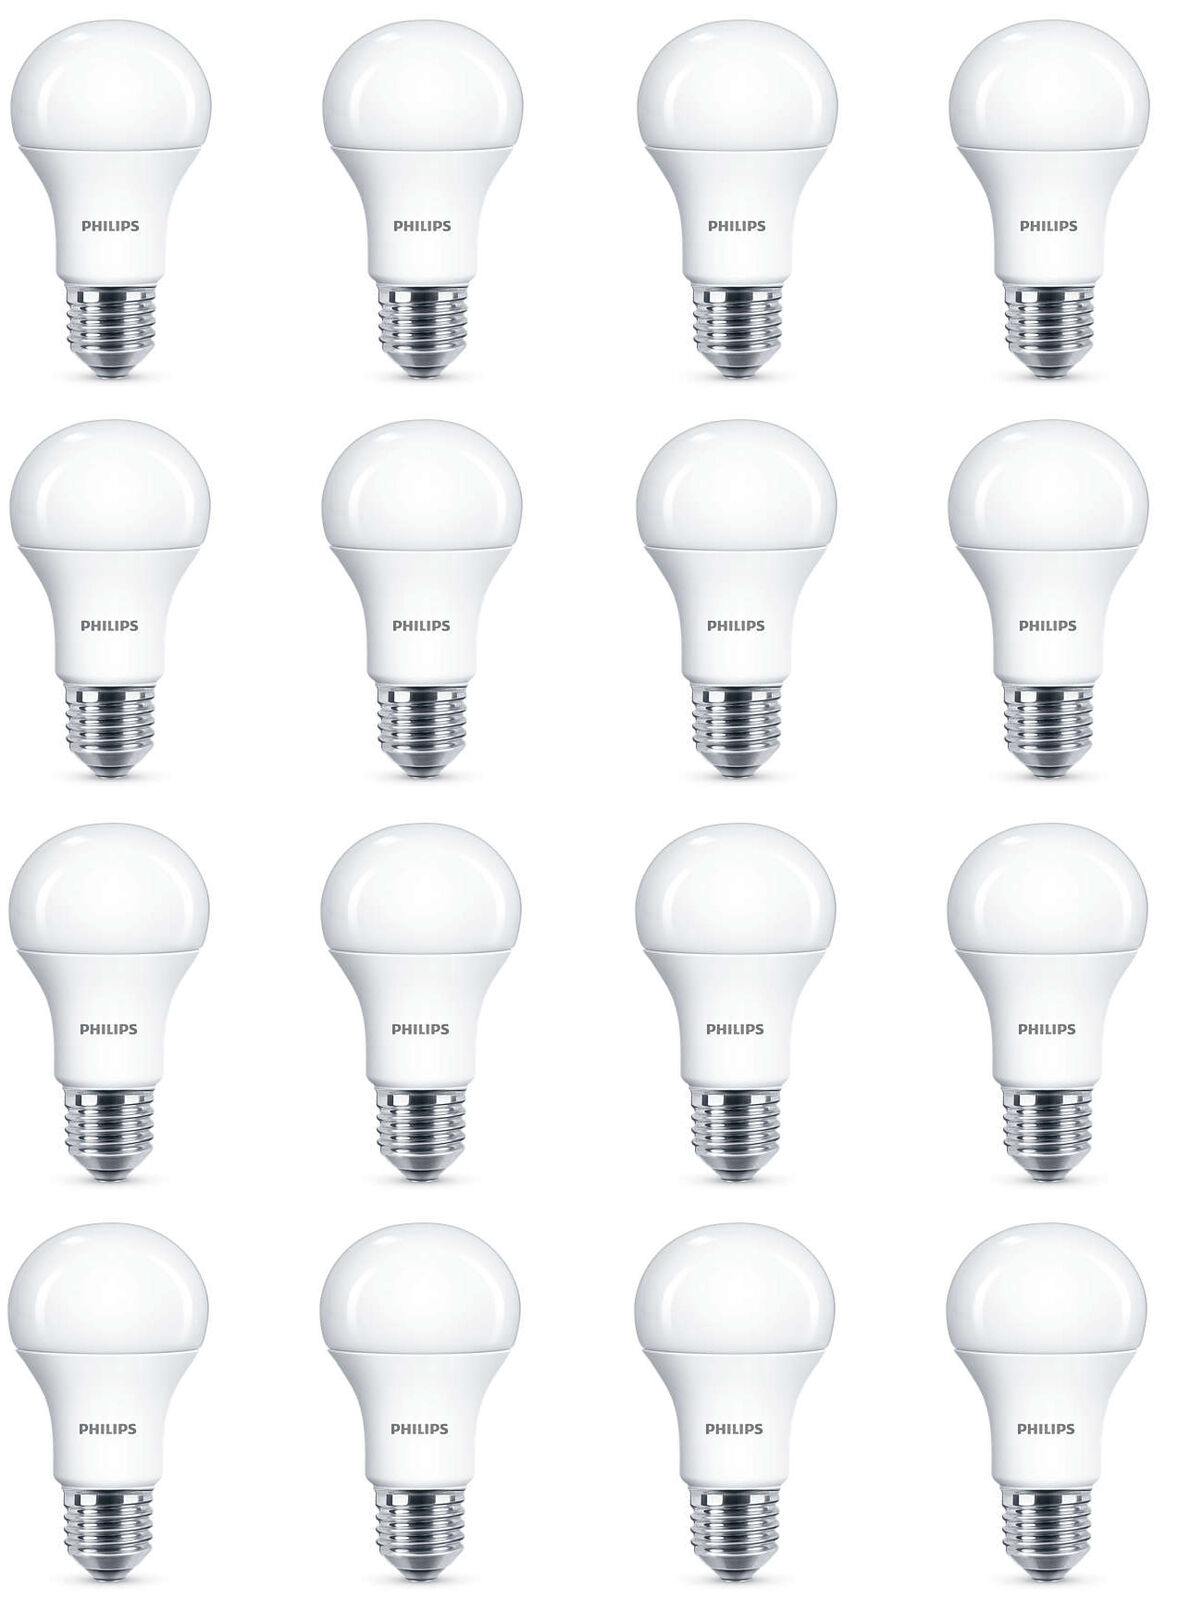 16 x Philips LED Frosted E27 Edison Screw 100w Warm Warm Warm blanco Light Bulb Lamp 1521lm 9584c7